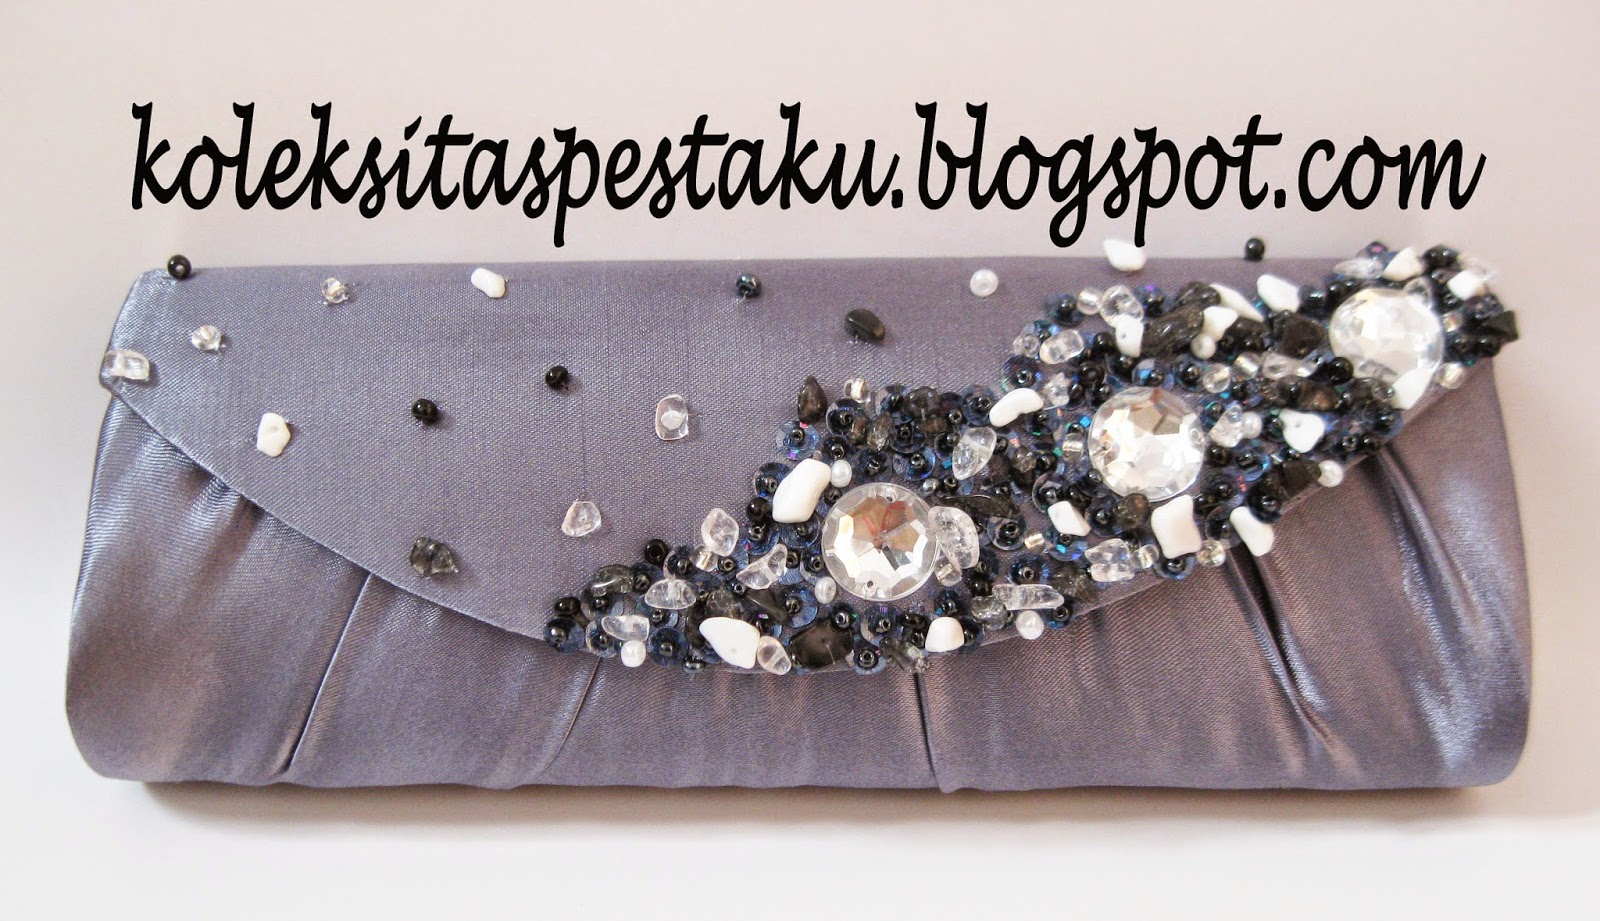 TAS PESTA CLUTCH BAG POLISH METALIC CANTIK